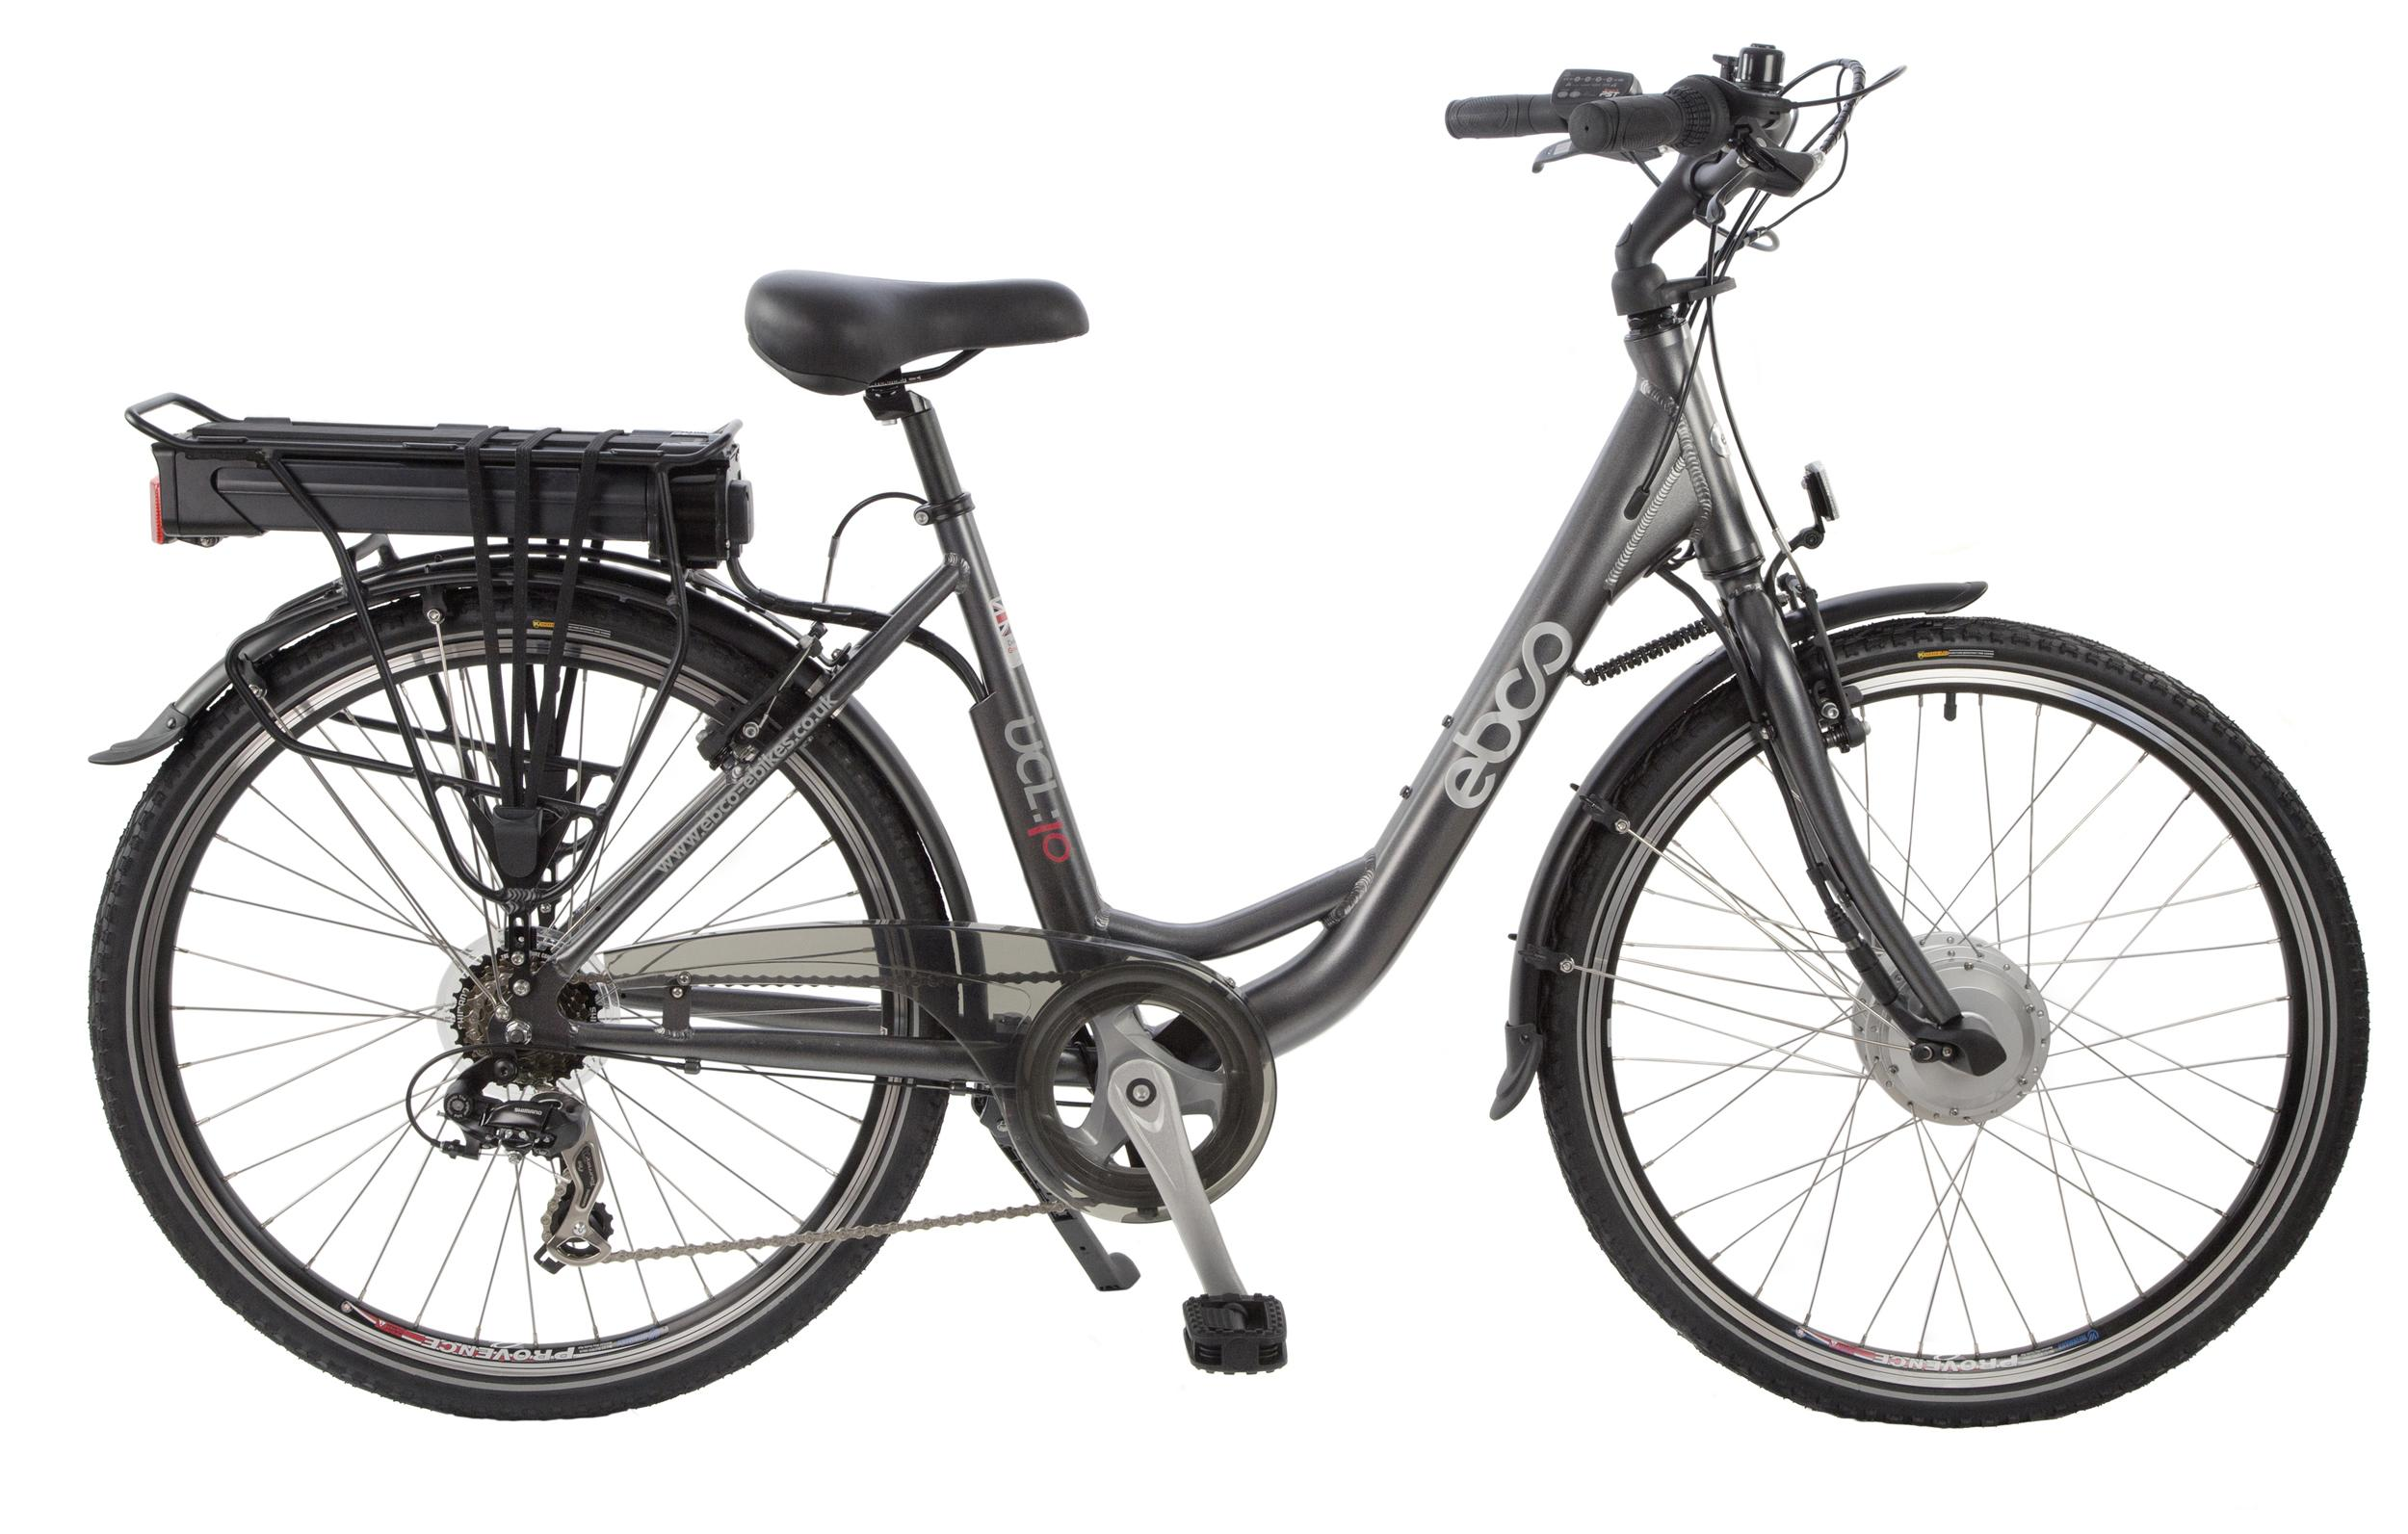 Ebco Ucl 10 Womens Mens Unielectric Bike 26 Wheels